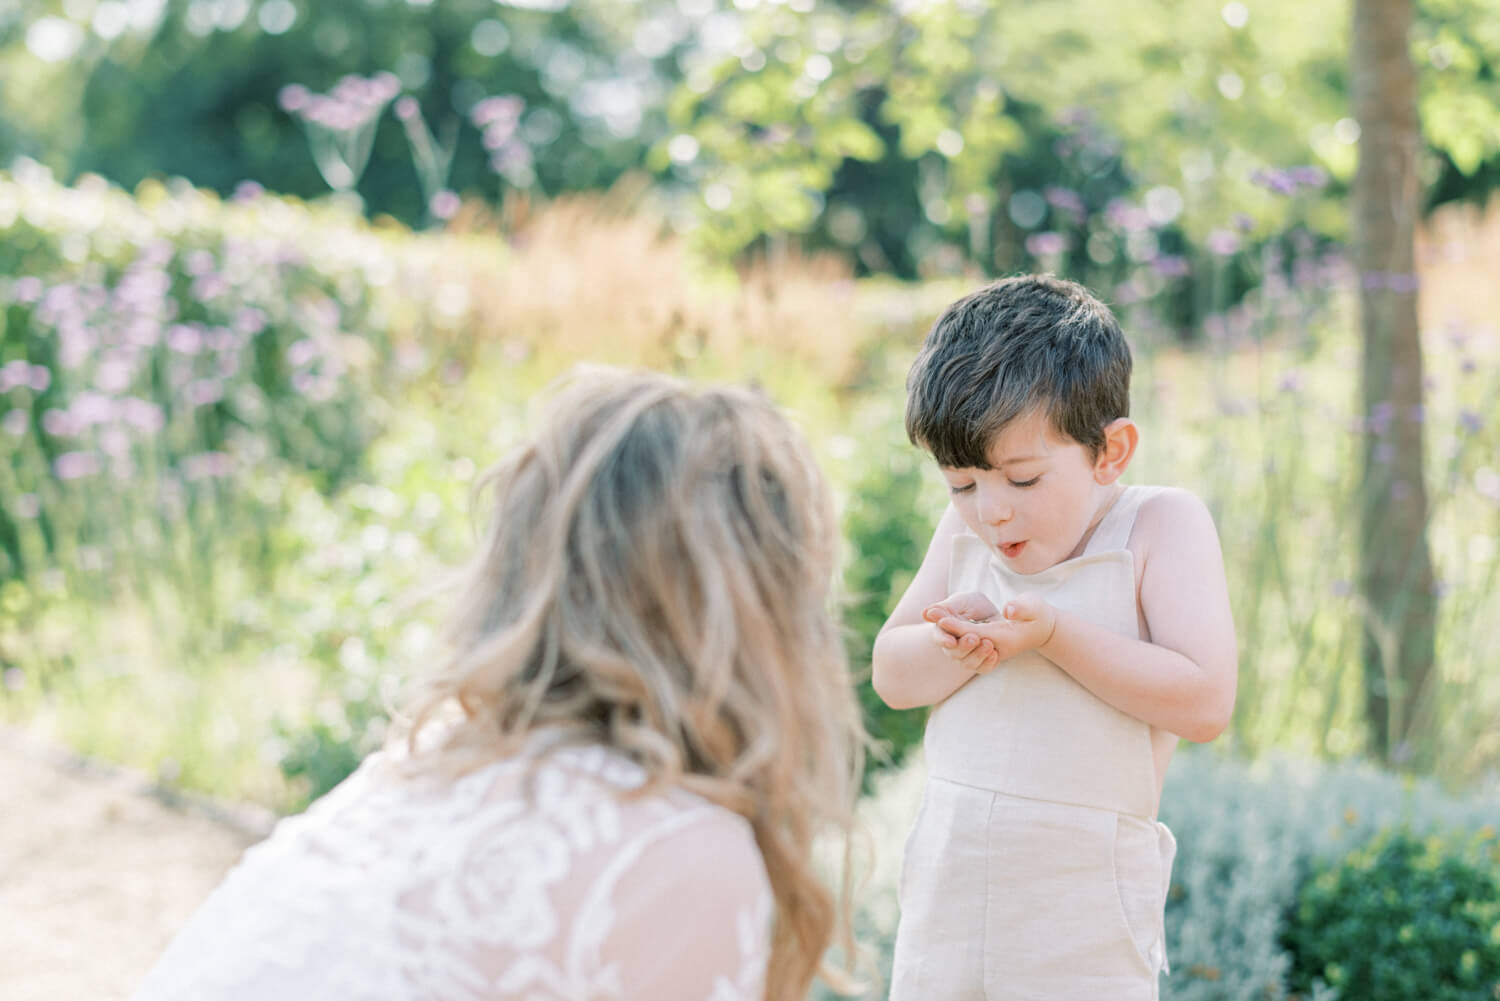 sweet mother and son playing happily ; son is blowing on his hands while mother is looking; mother wearing lace empire cut lace summer dress with long sleeves; blonde hair updo with bangs fringe; toddler son wearing beige neutral dungaree in linen fabric | Cottagecore Aesthetic Family photo shoot mini session in Wynyard Hall and Gardens by Cristina Ilao Photography